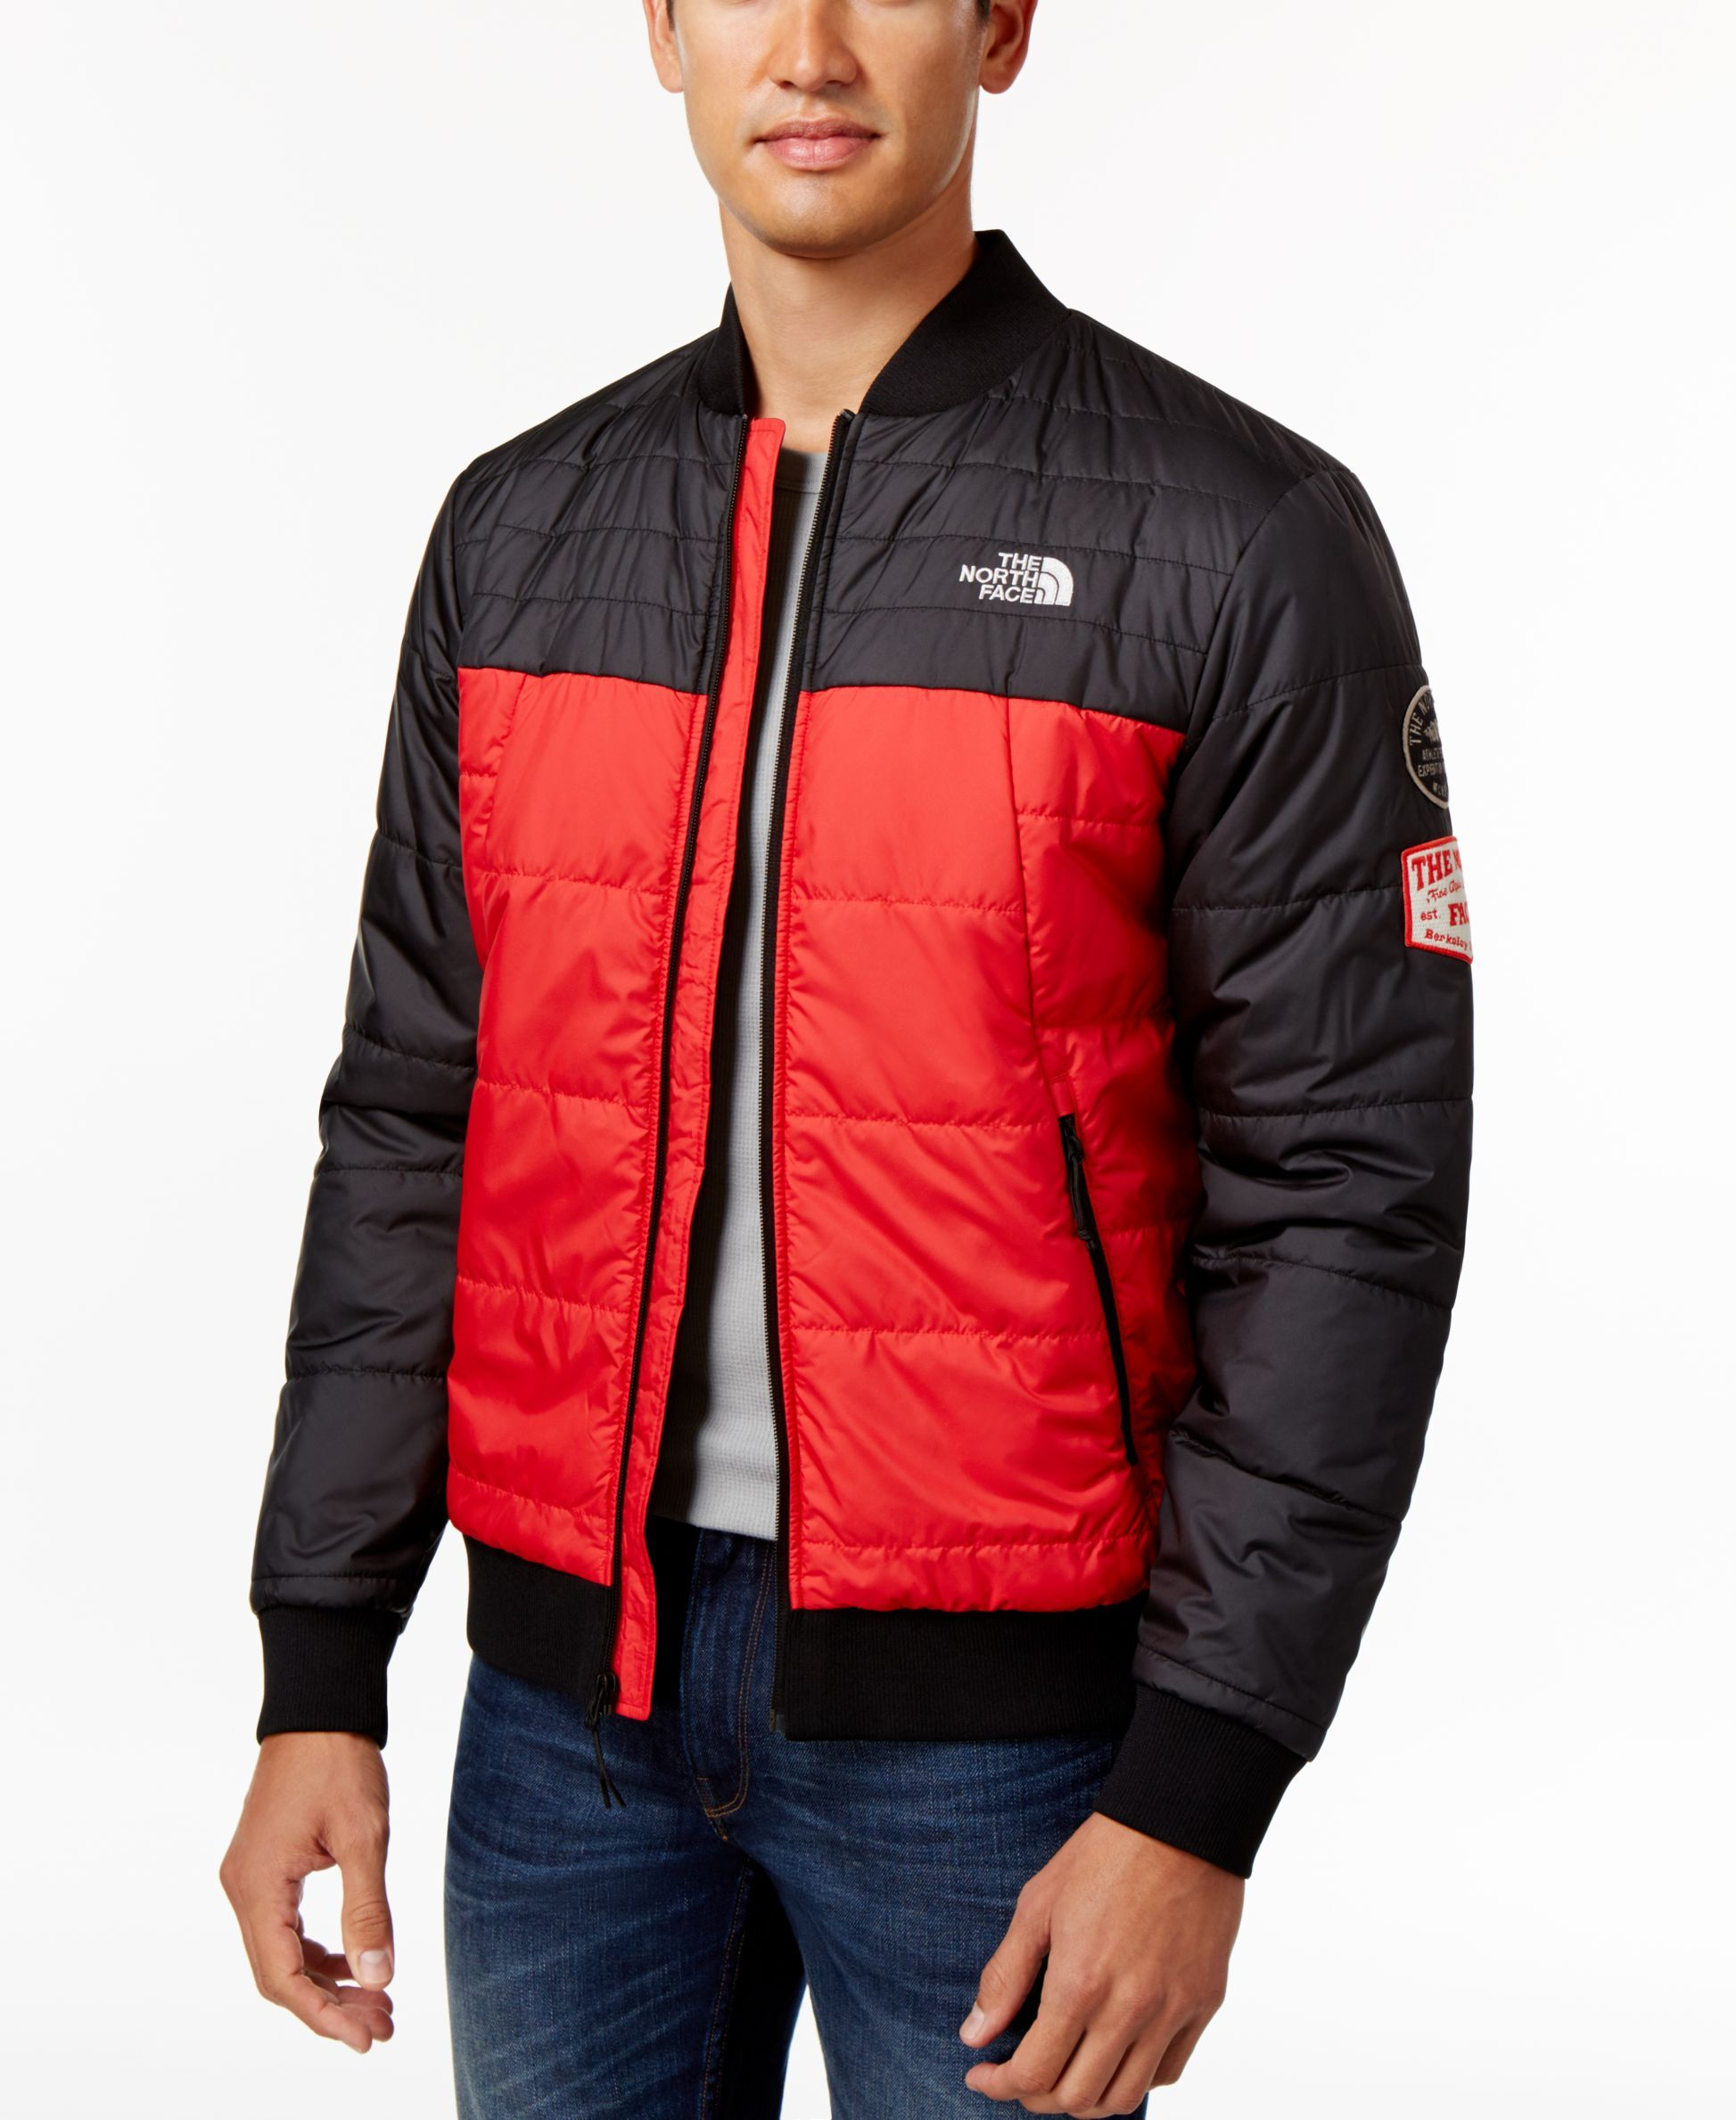 The North Face Men S Quilted Bomber Jacket Quilted Bomber Jacket Red Dress Jacket Light Waterproof Jacket [ 2378 x 1947 Pixel ]